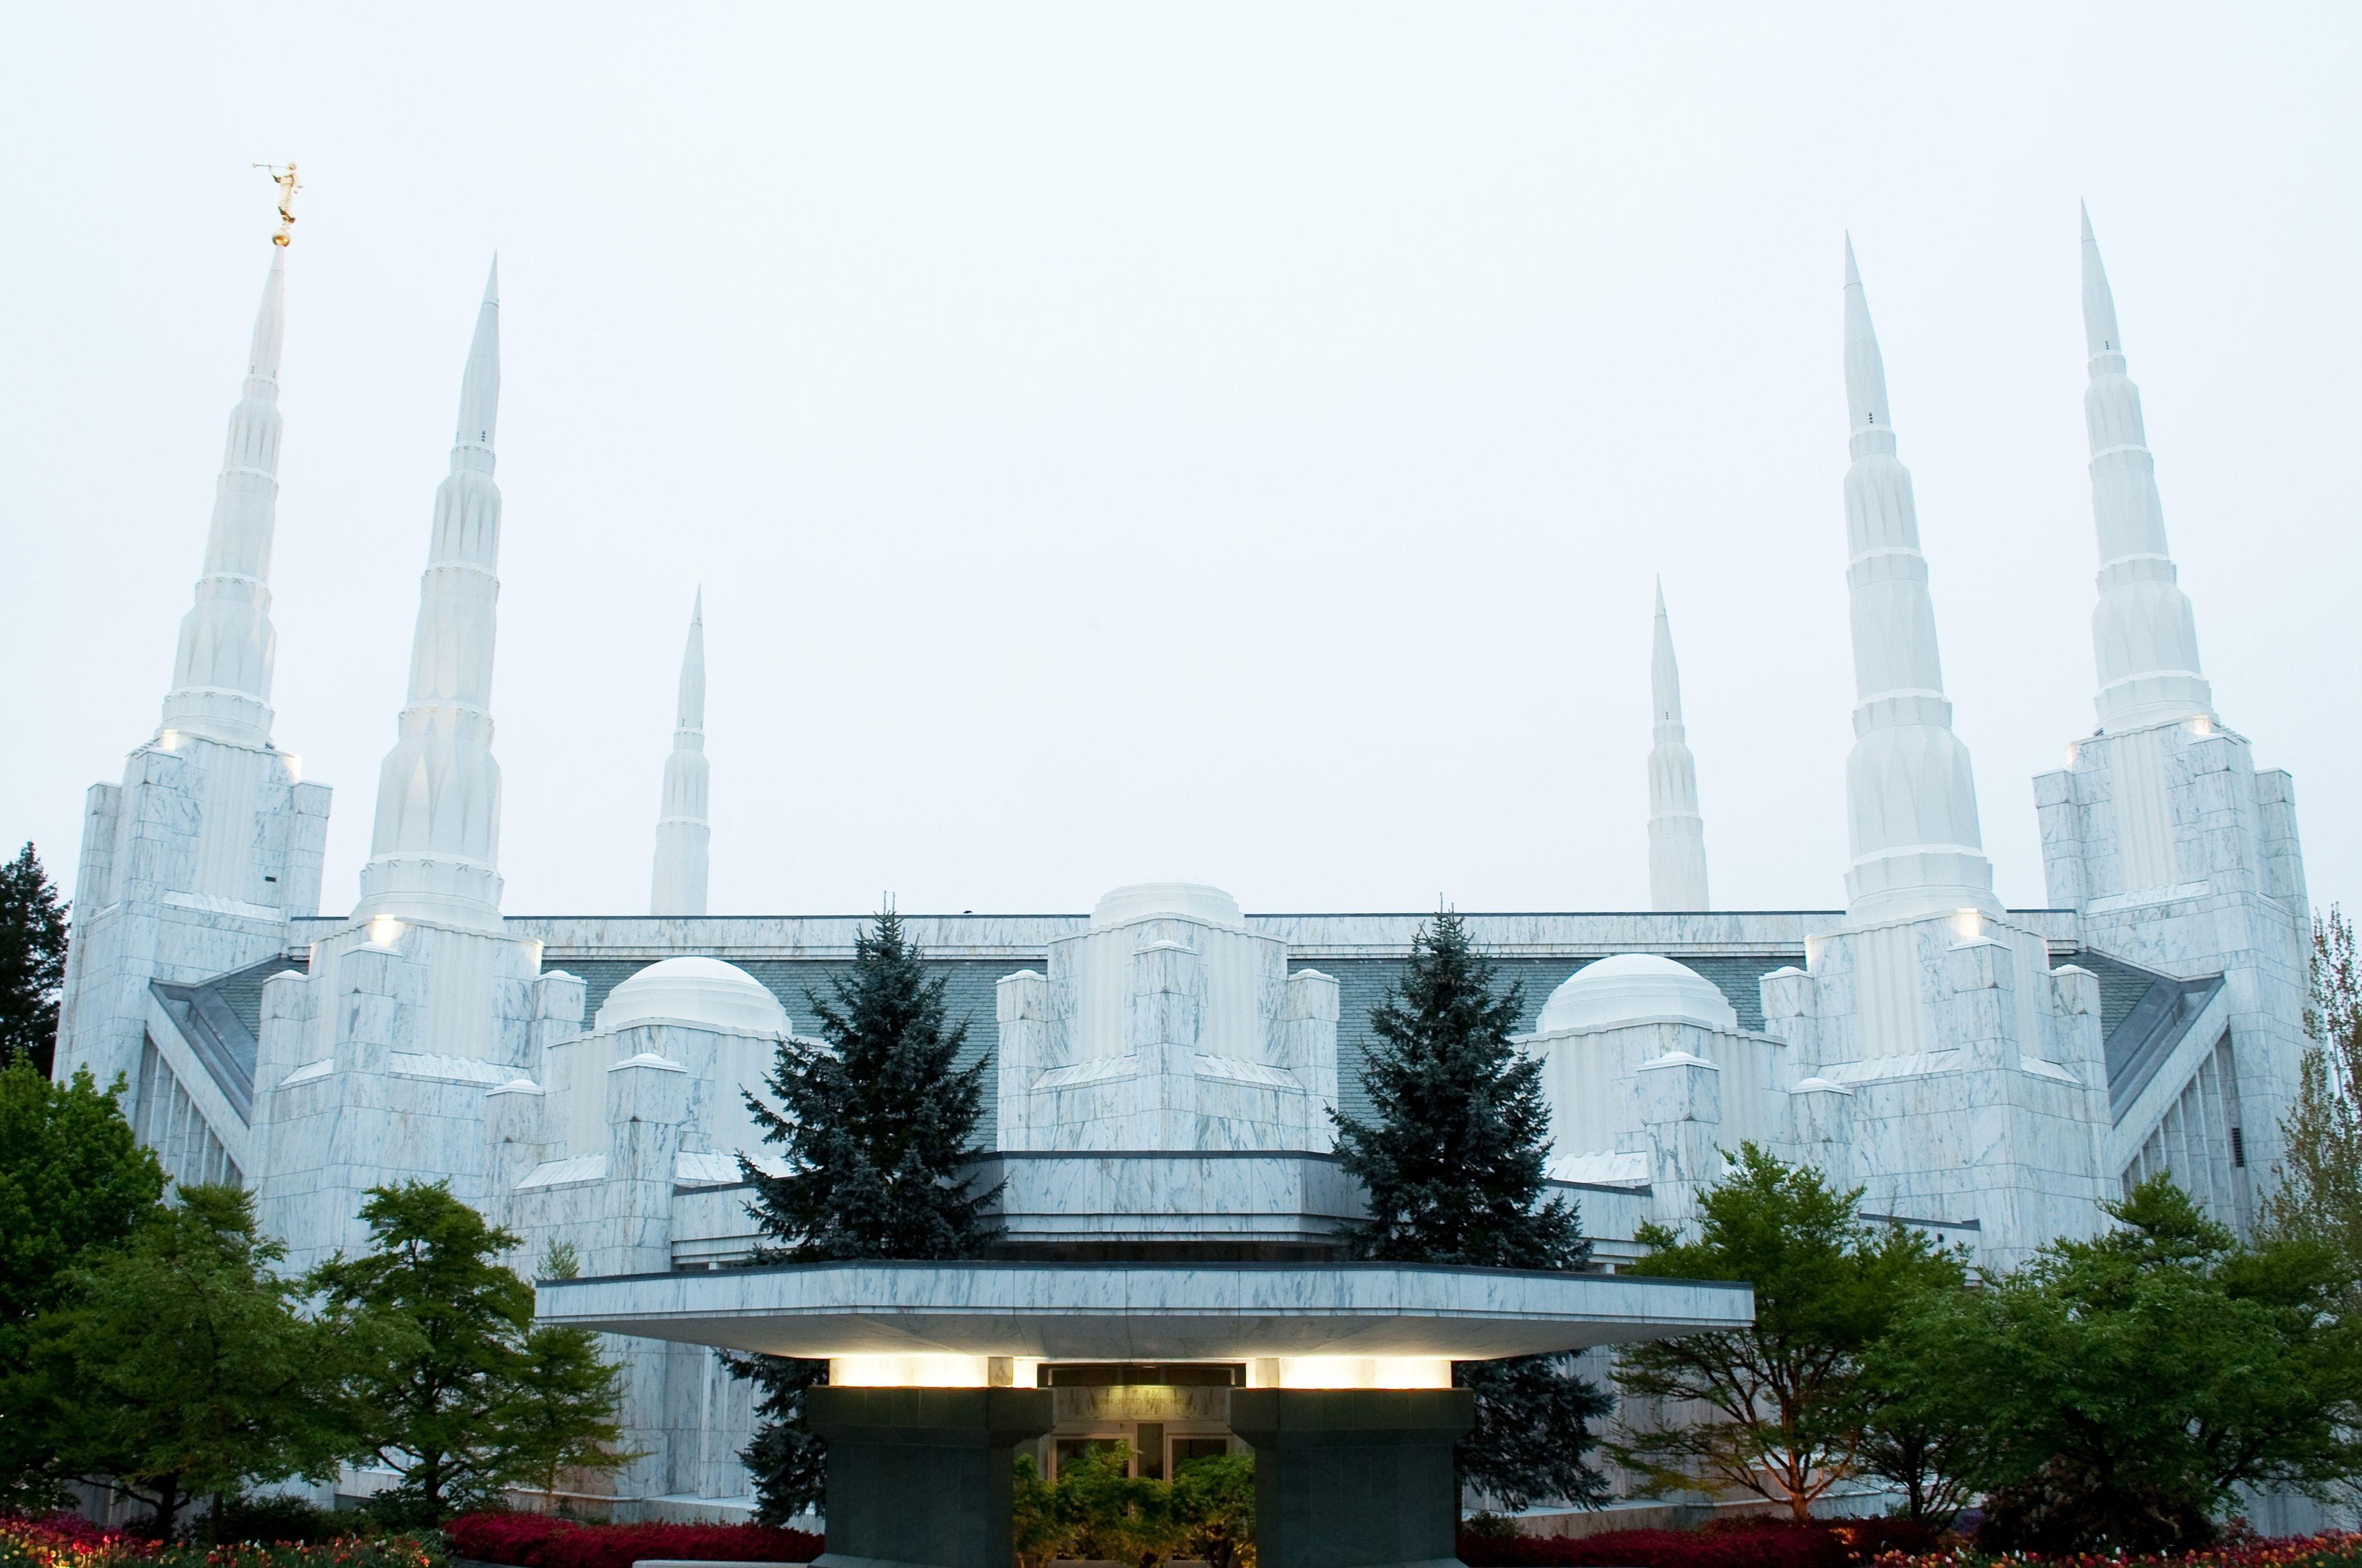 The Portland Oregon Temple and its entrance on a cloudy day.